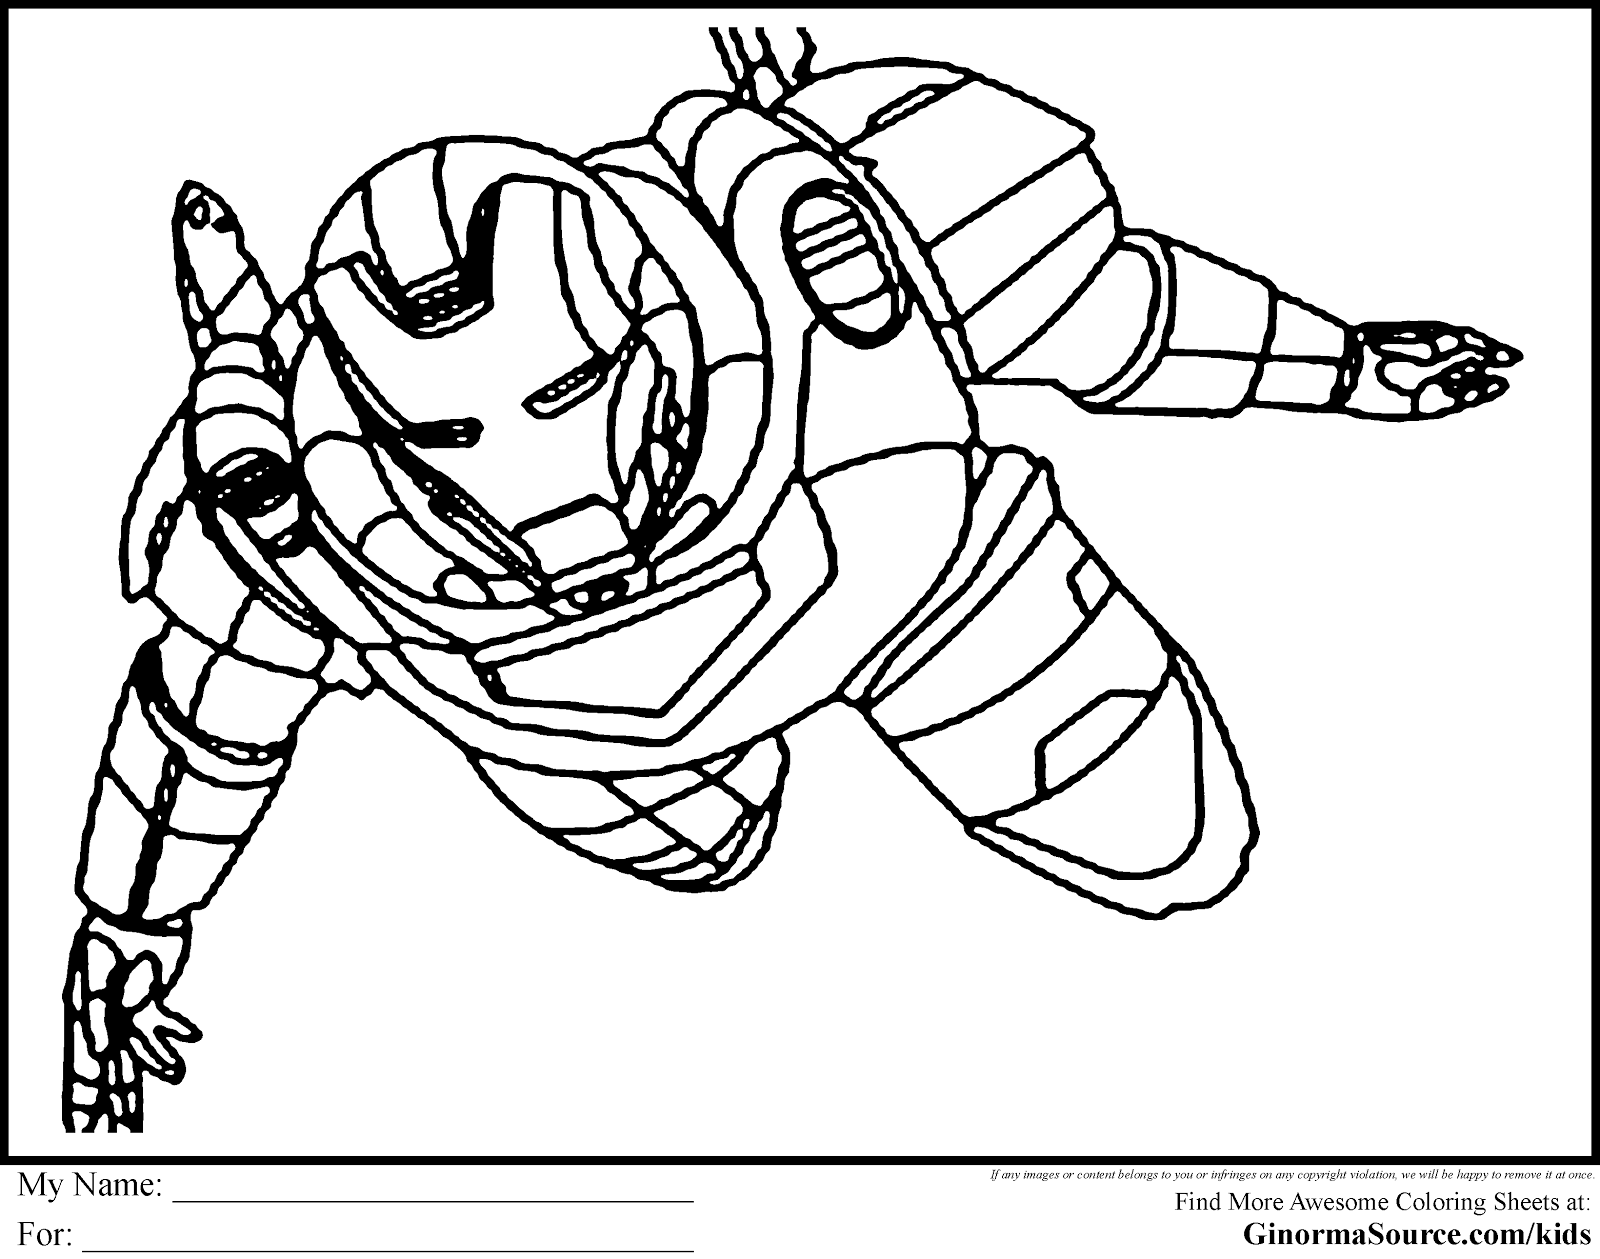 Crush image regarding super hero printable coloring pages